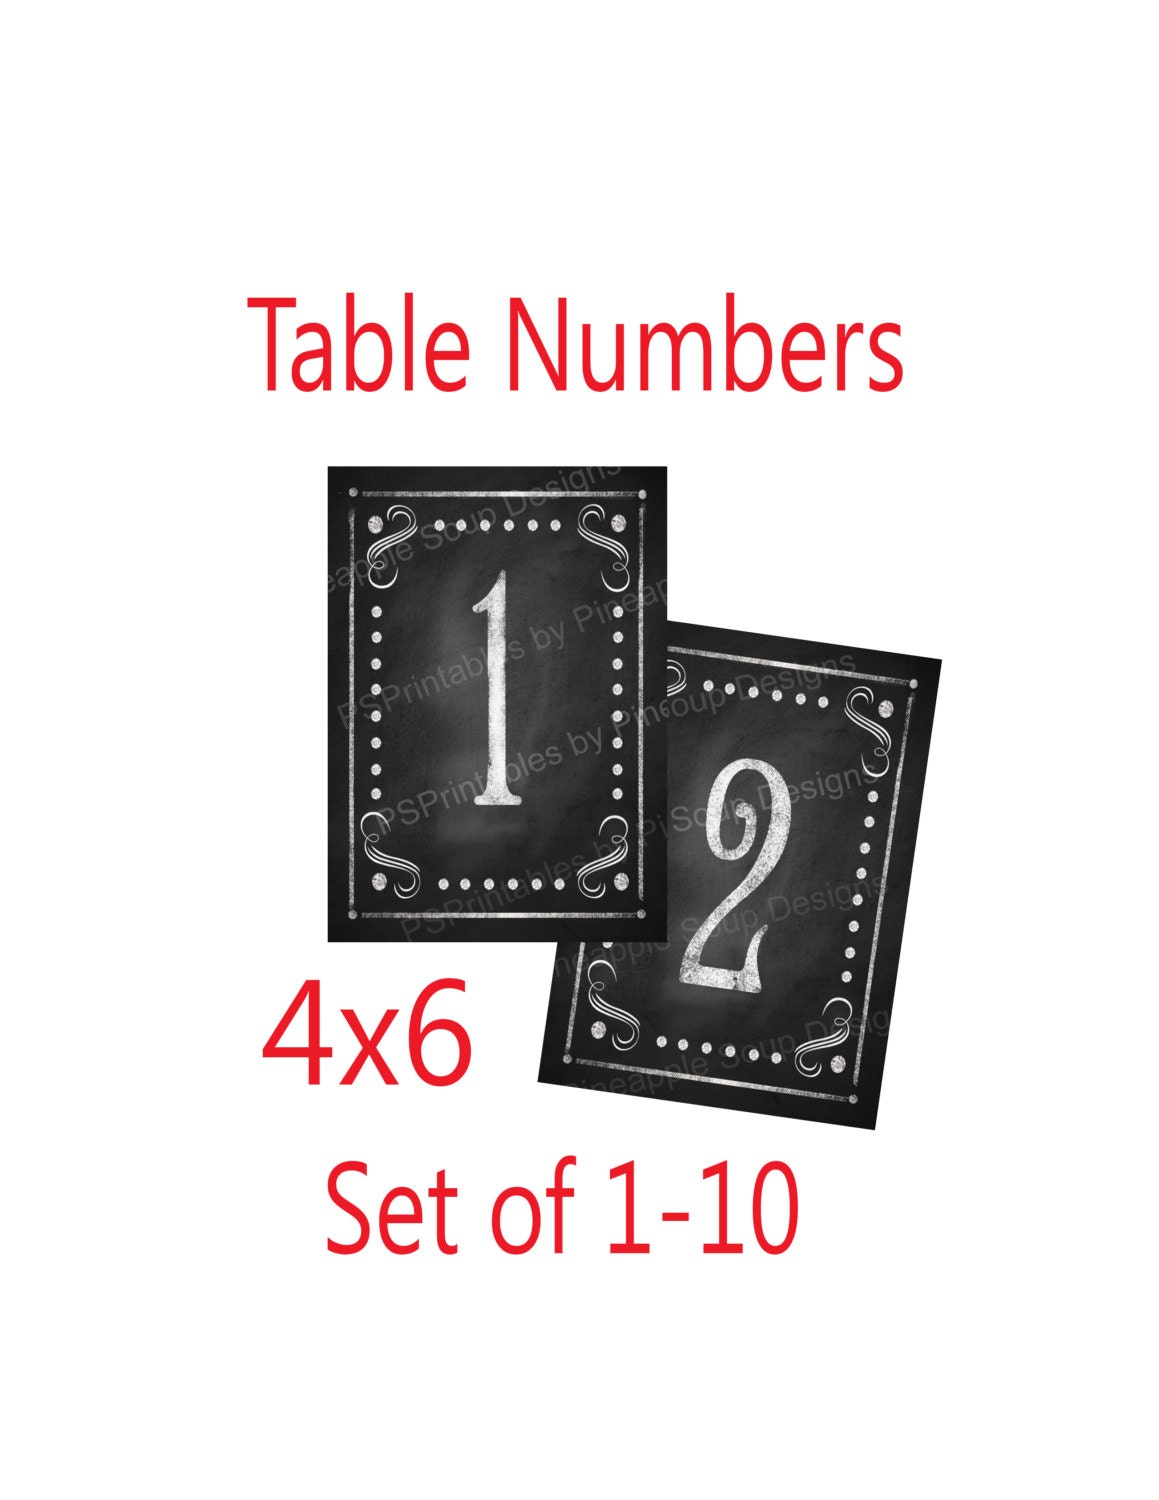 Pleasing Diy Printable Table Numbers For Your Rustic Wedding 1 10 Download Free Architecture Designs Rallybritishbridgeorg